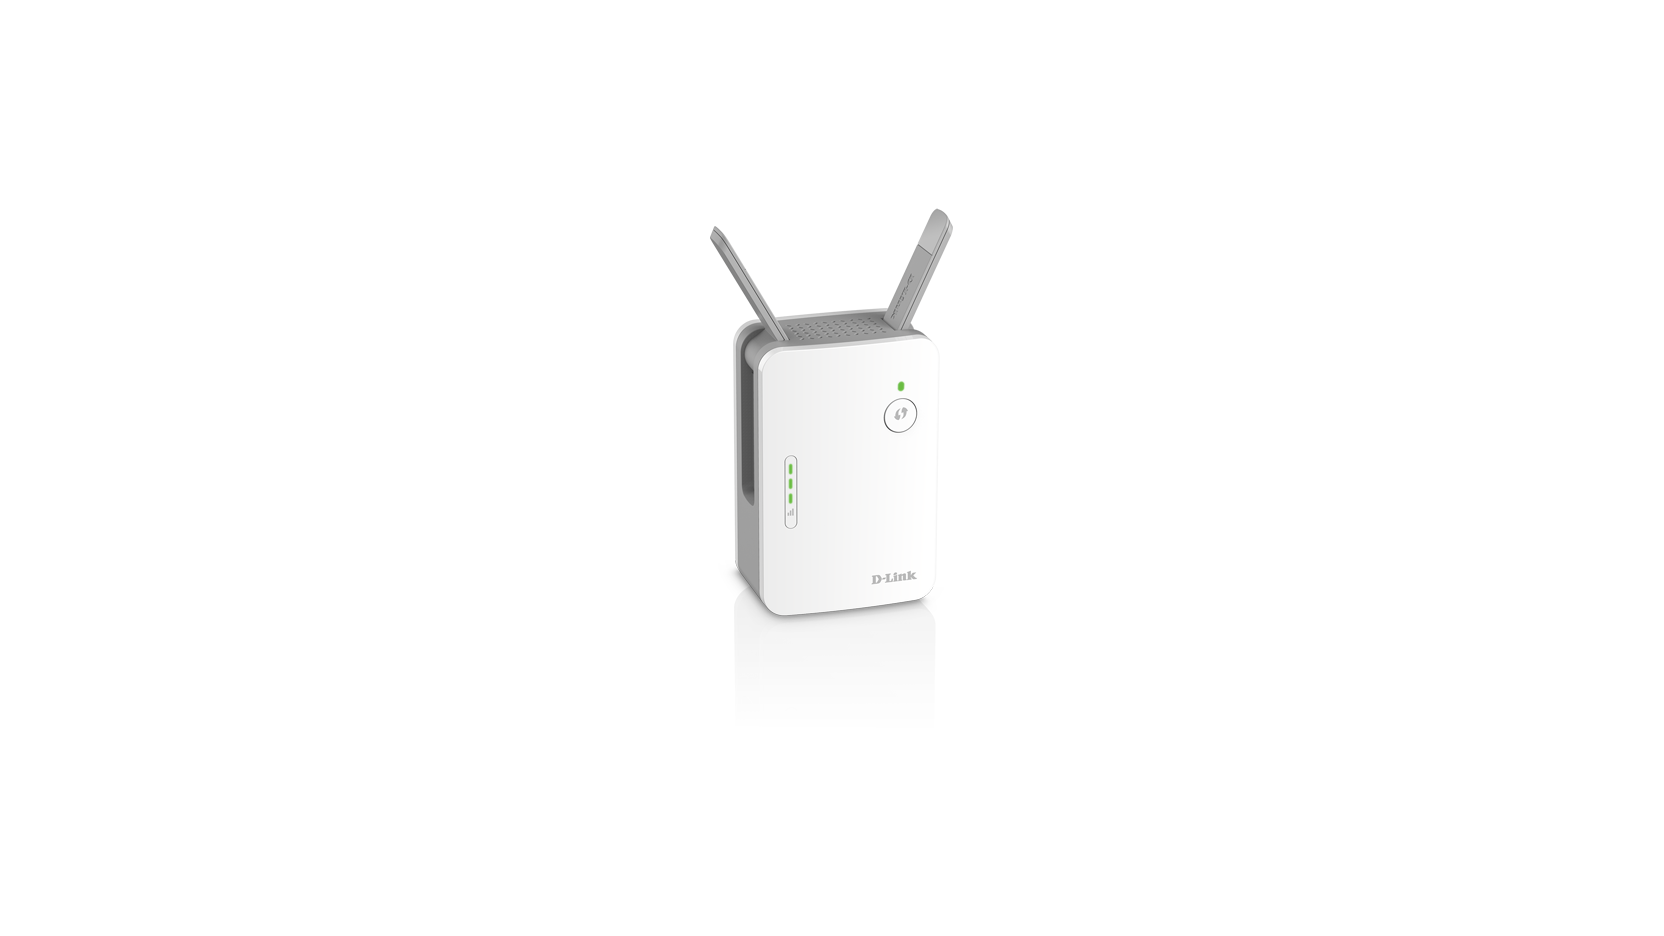 how to connect dlink dap 1620 to airport